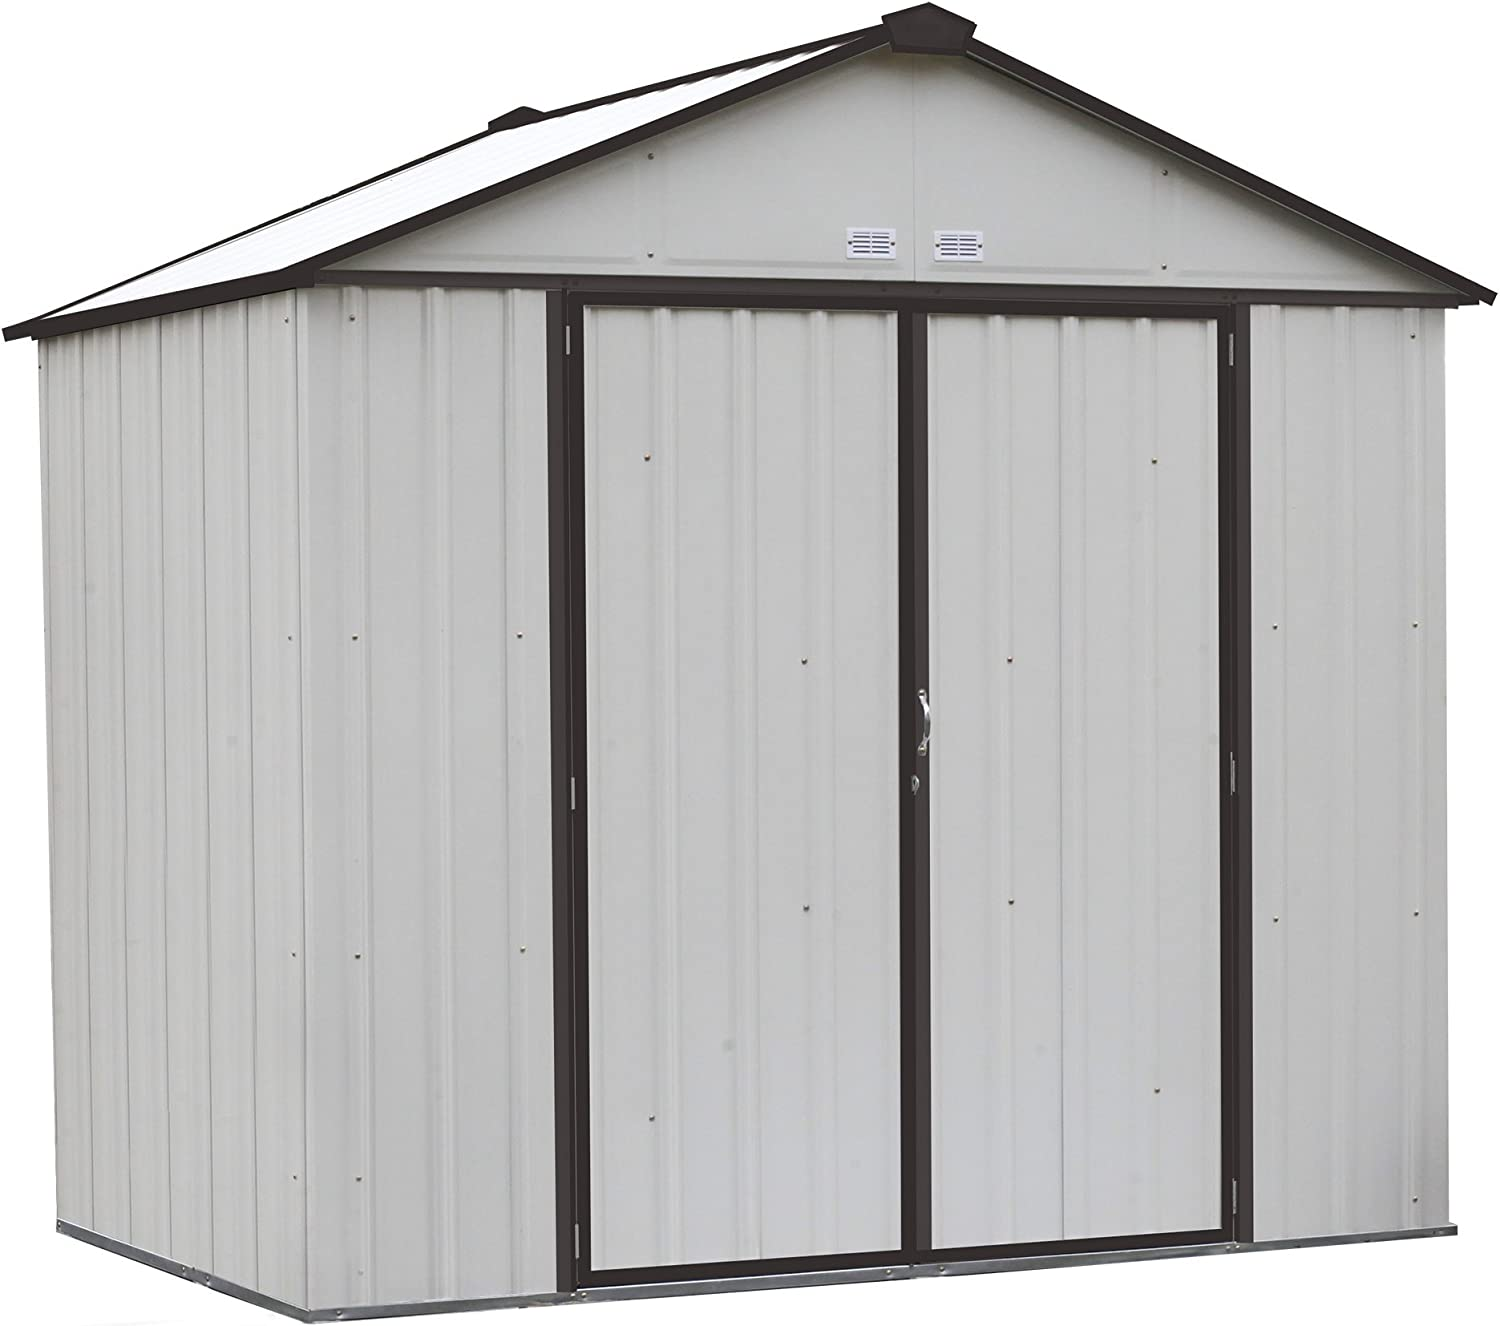 Arrow 6 x 5 EZEE Shed Charcoal Low Gable Steel Storage Shed with Peak Style Roof